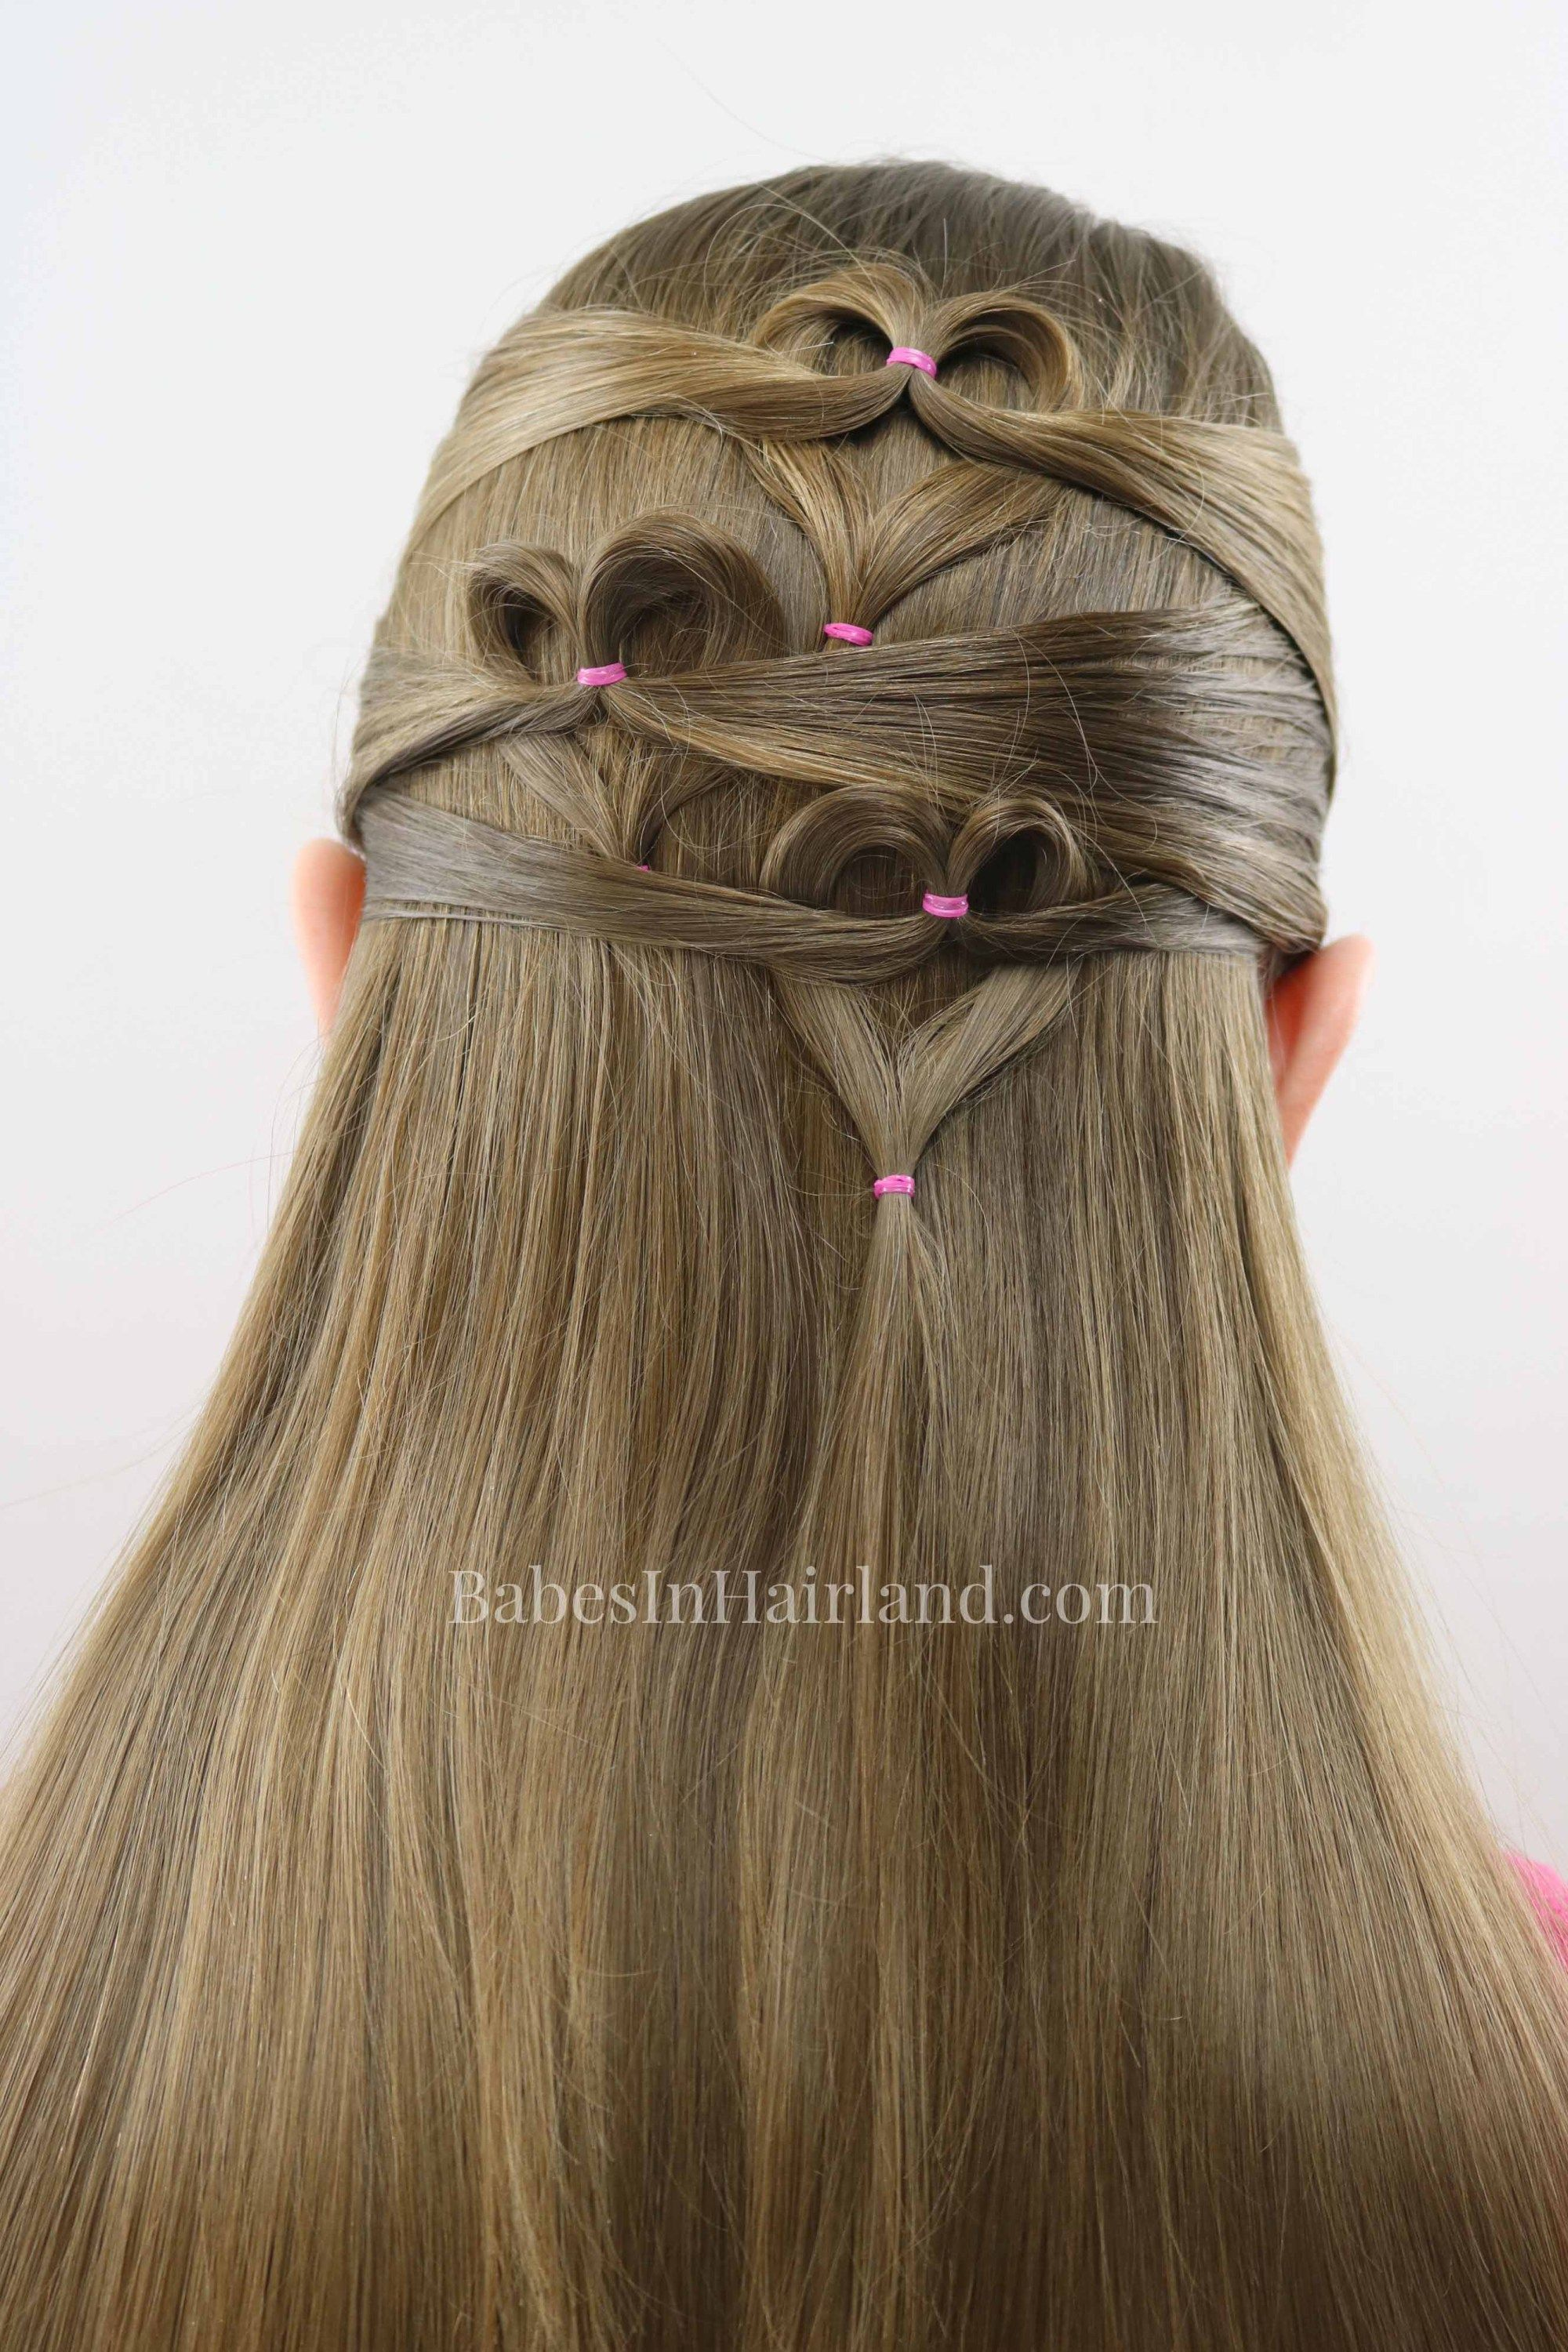 Need A Cute Valentines Day Heart Hairstyle But Dont Have Much Time